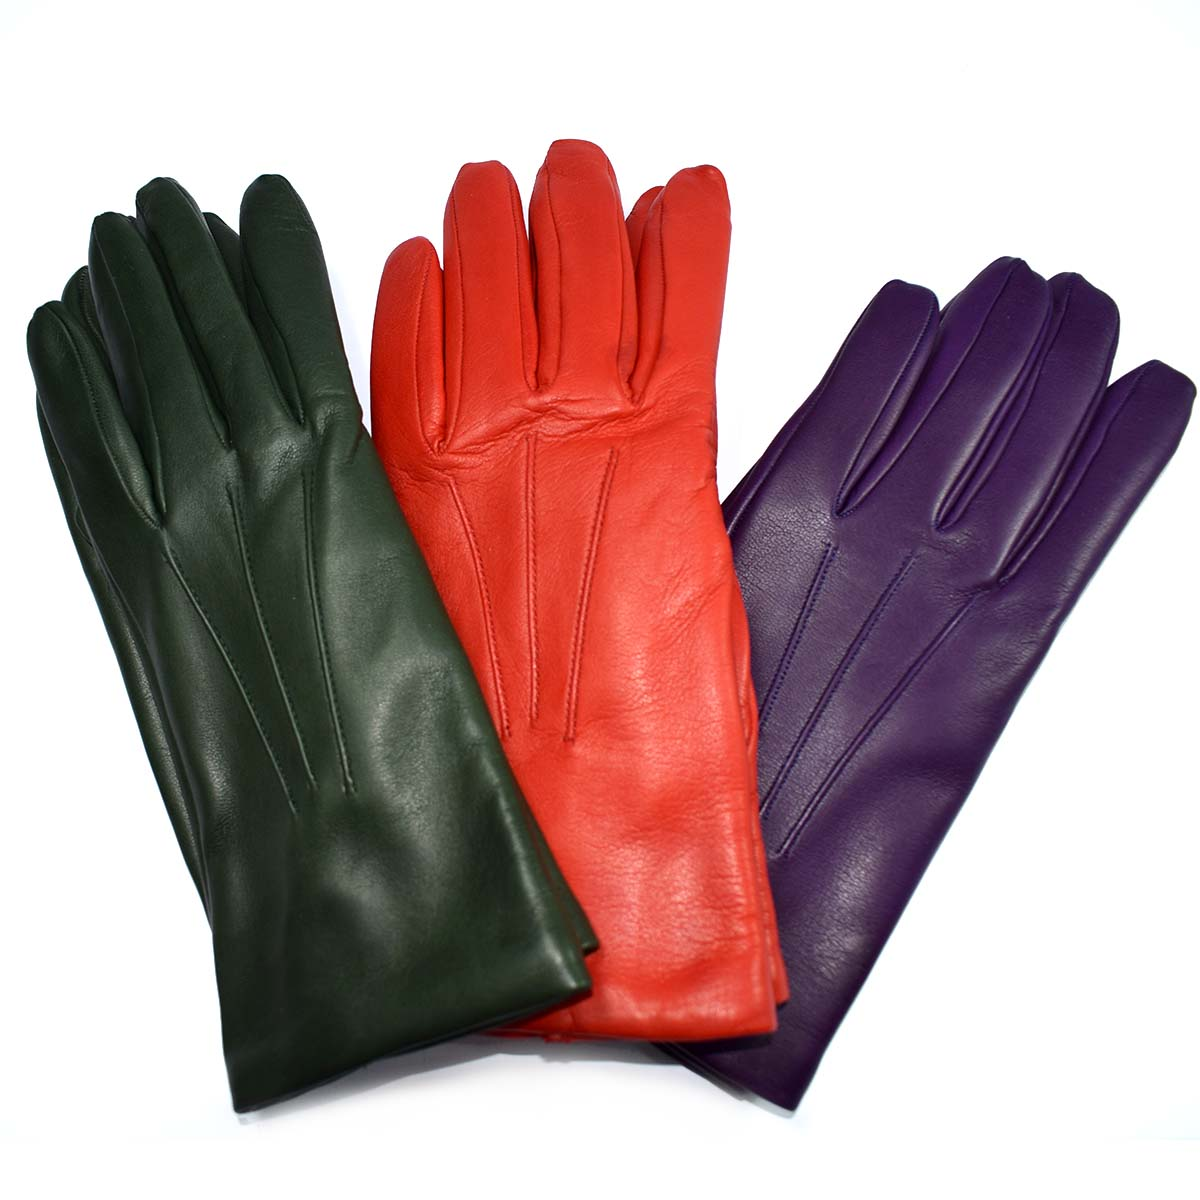 8773 classic gloves for woman by Bottega Fiorentina